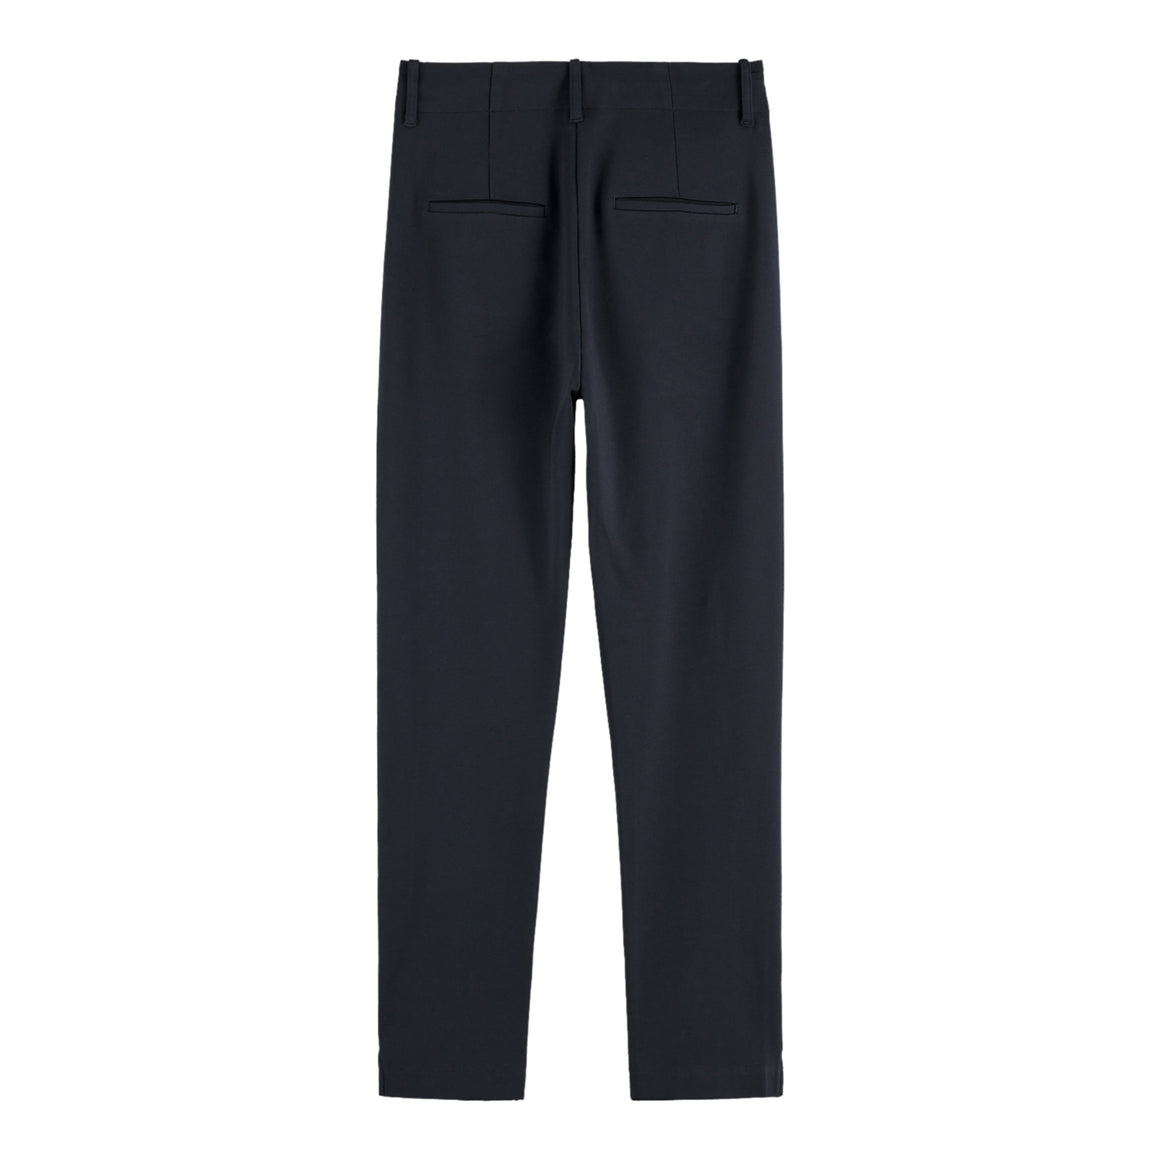 Tailored Stretch Pants for Women in Night